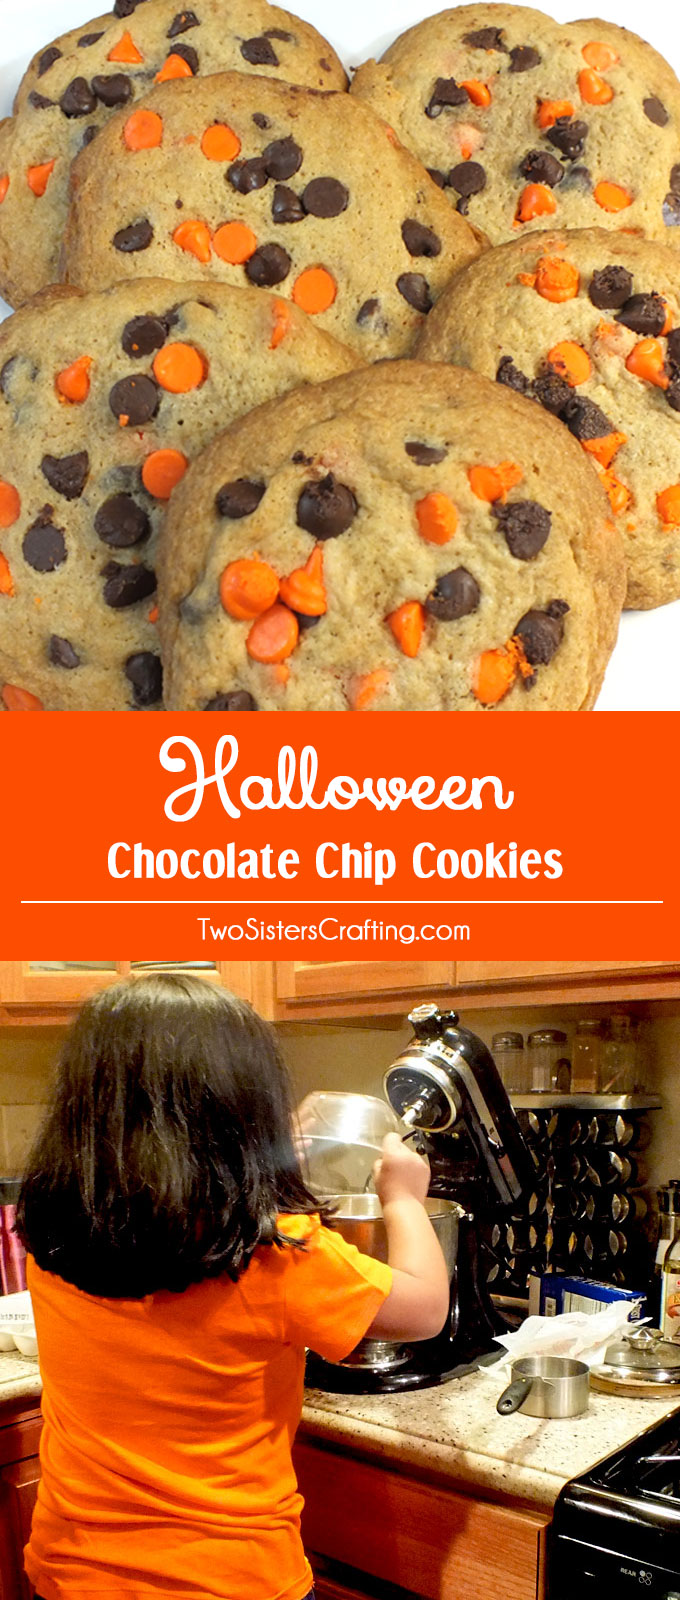 Halloween Chocolate Chip Cookies - Two Sisters Crafting